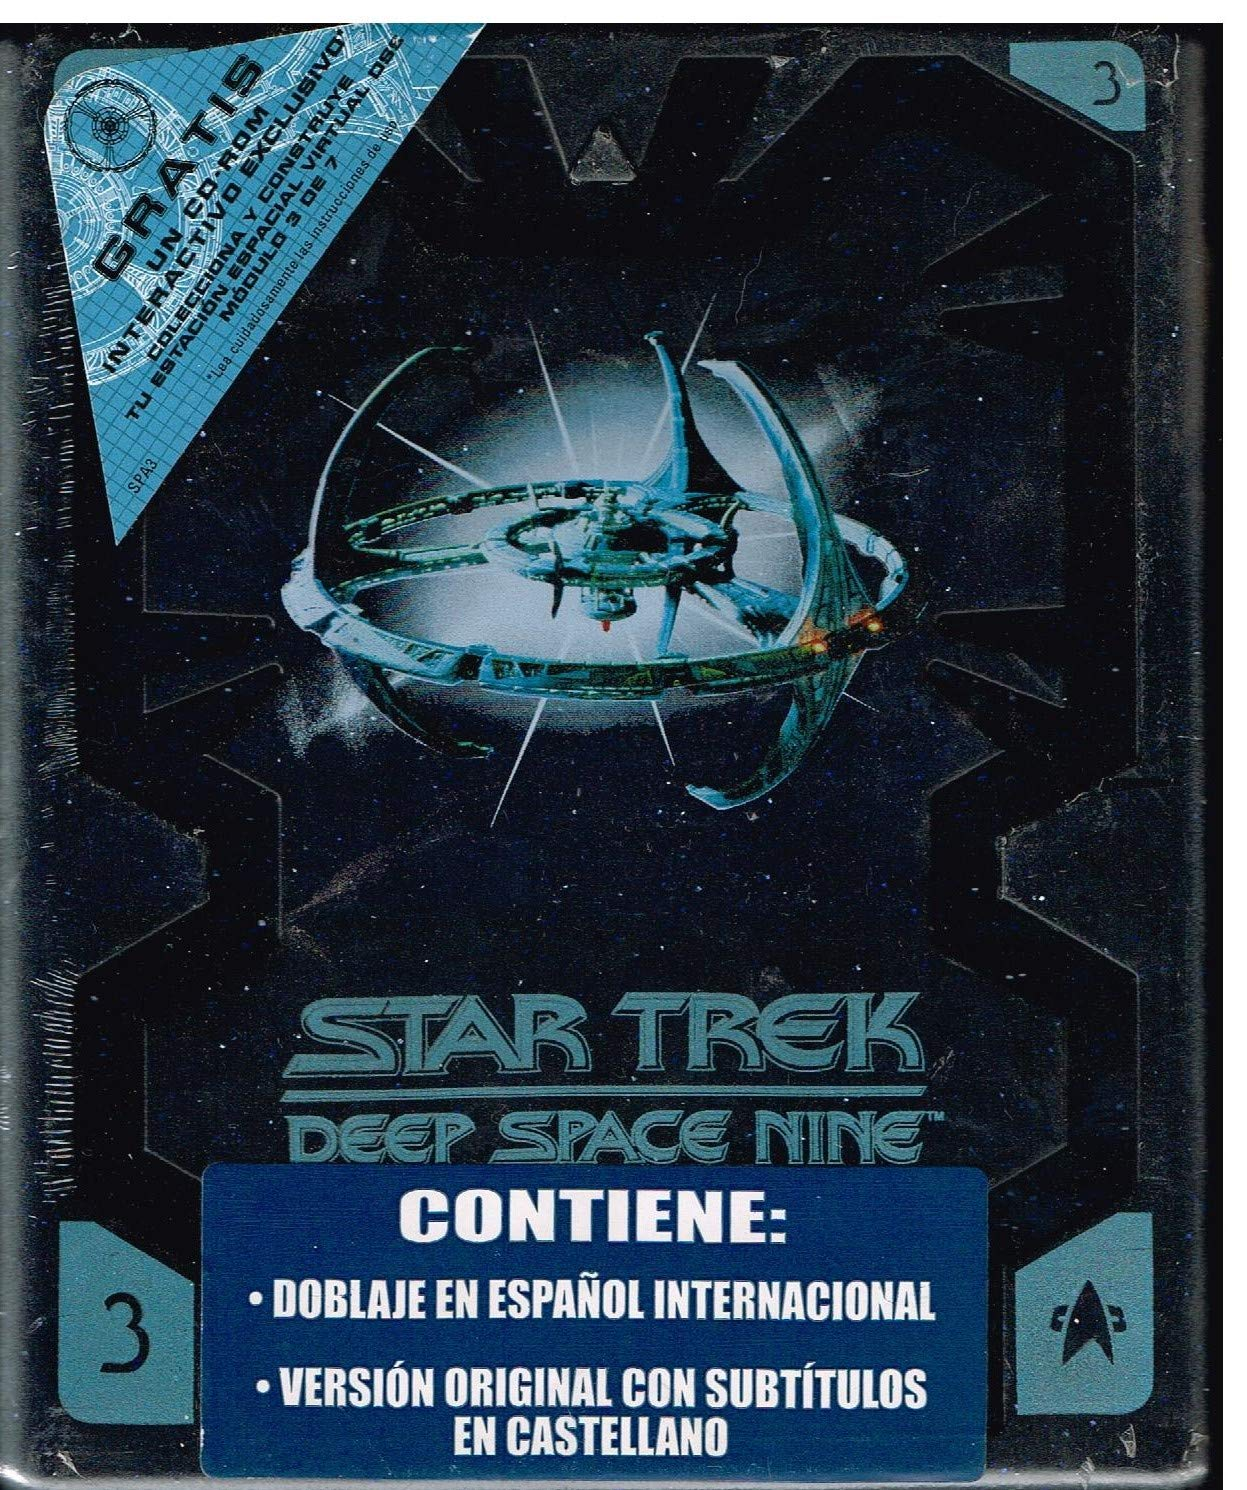 Pack Star Trek Deep Space Nine 3ª Temporada Espacio Profundo Nueve DVD: Amazon.es: Cine y Series TV